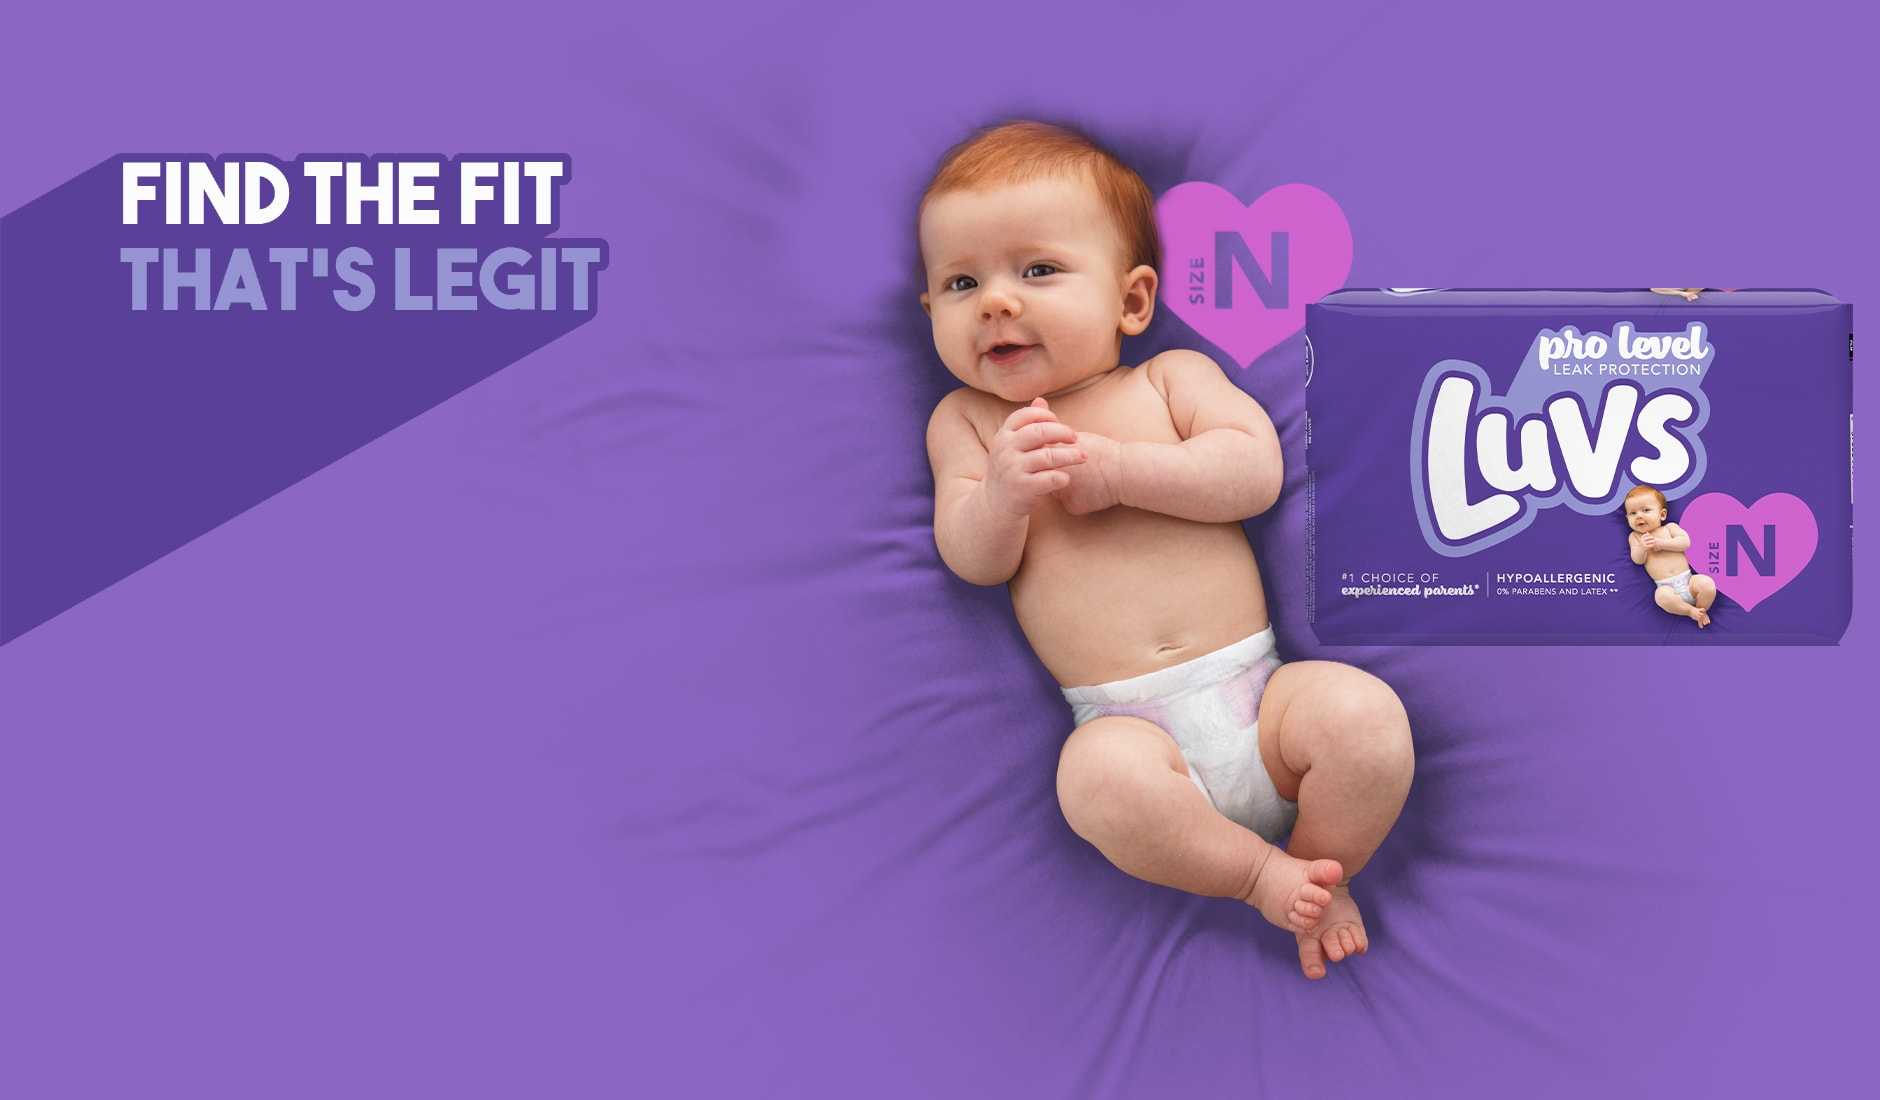 UP TO 10 POUNDS? SHOP NEWBORN